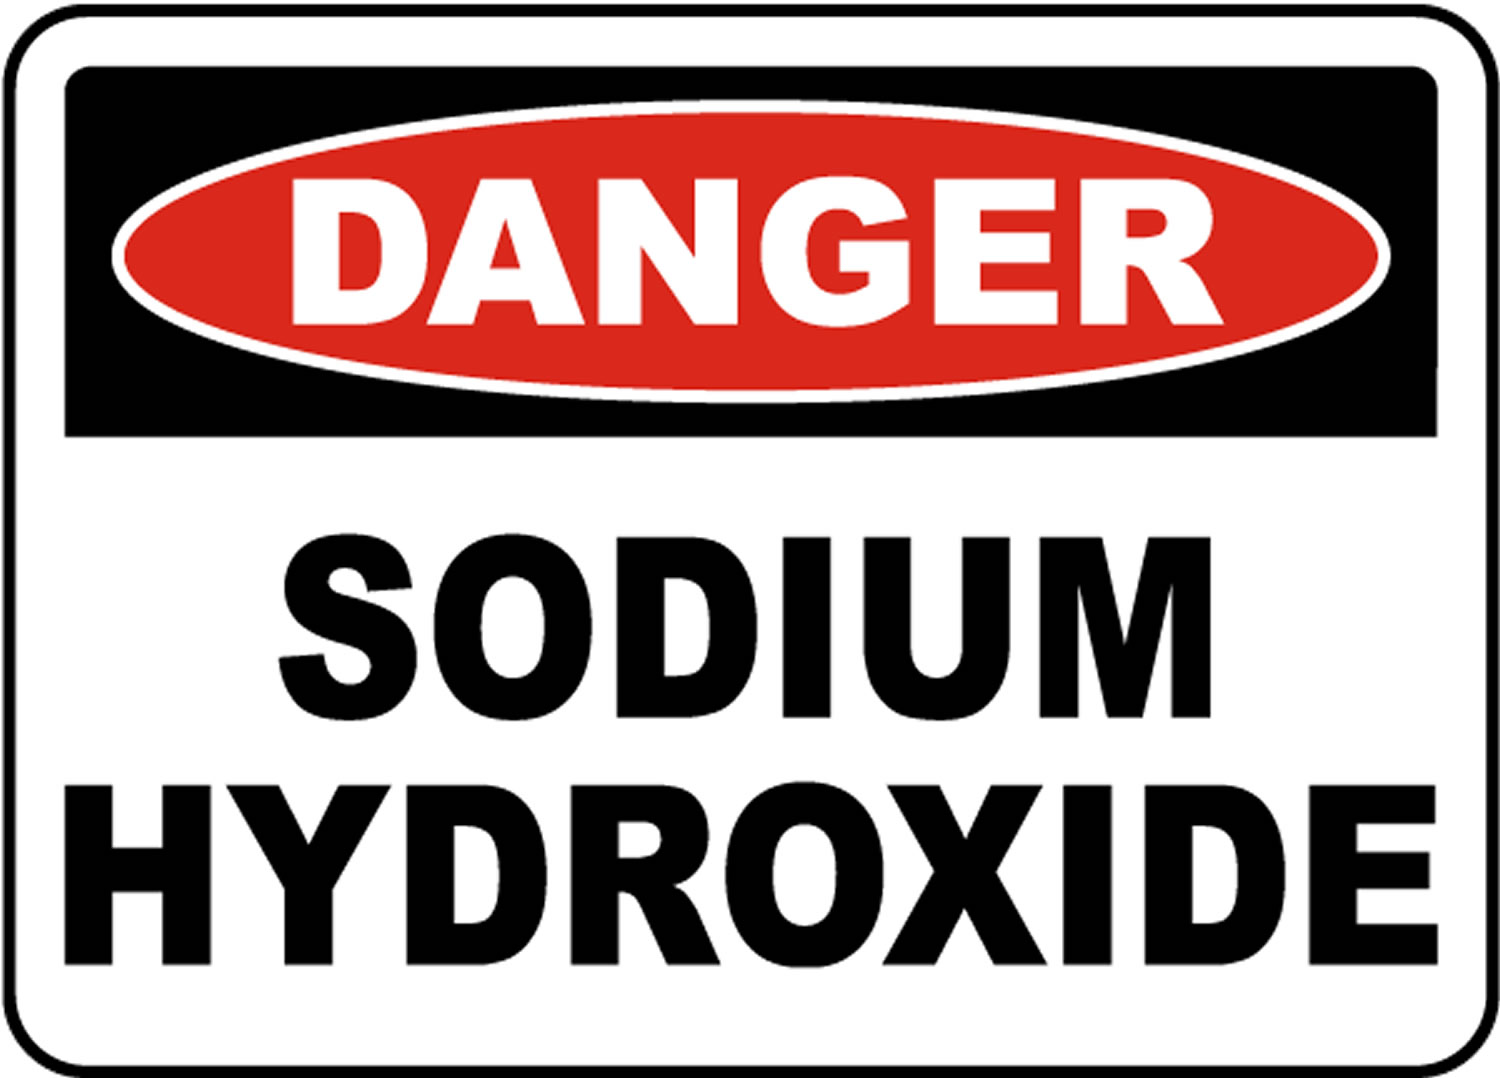 sodium hydroxide dangers